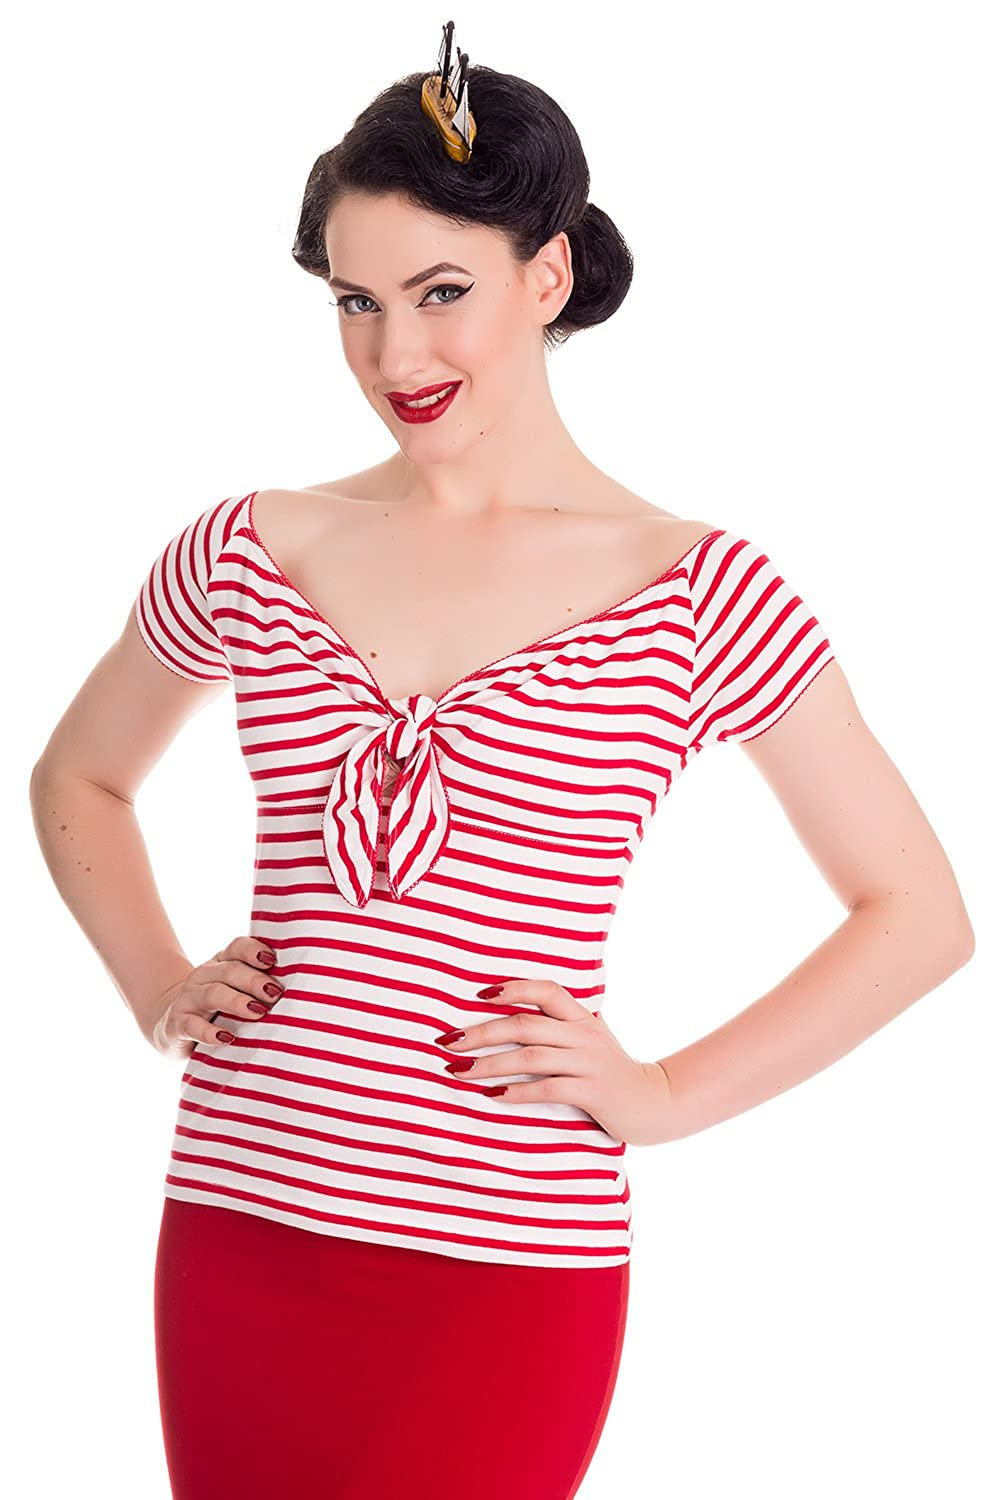 1950s Rockabilly & Pin Up Tops, Blouses, Shirts Hell Bunny Dolly Rockabilly 50s Bardot Blouse Top $29.99 AT vintagedancer.com